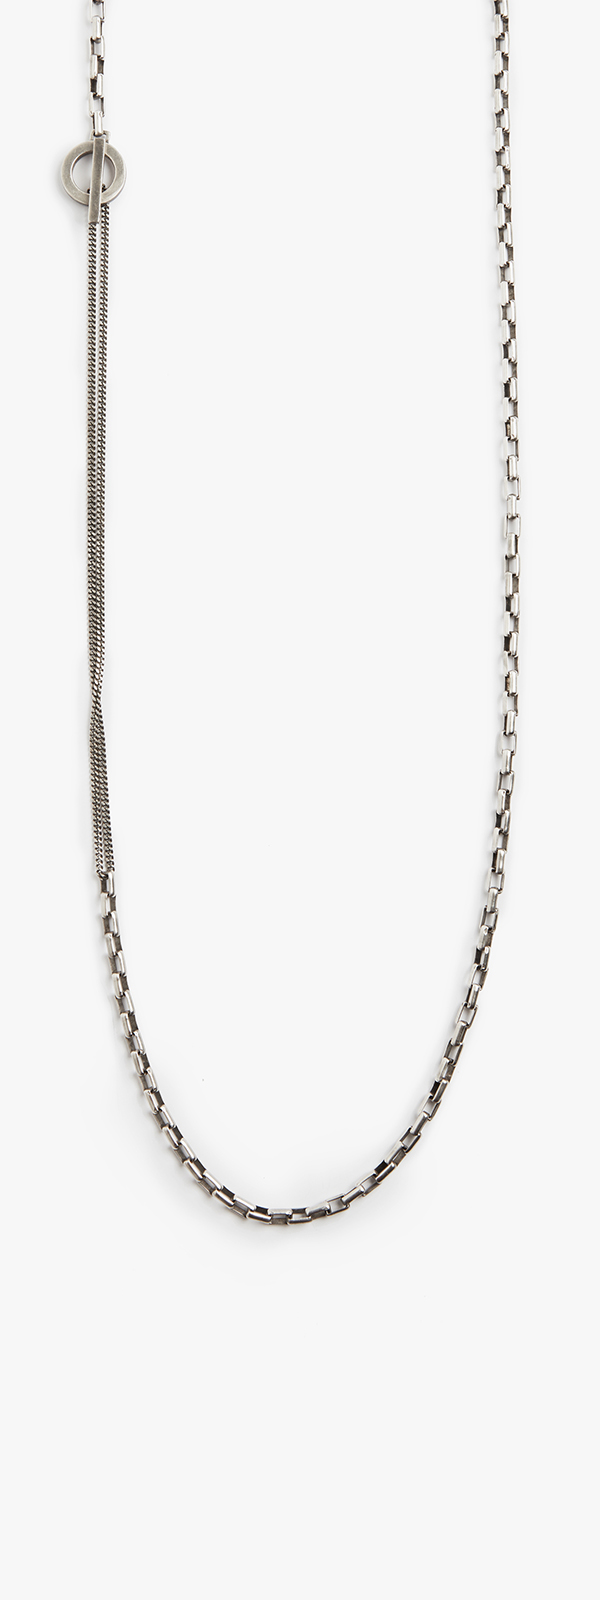 Image of Box to Curb Chain Necklace 060